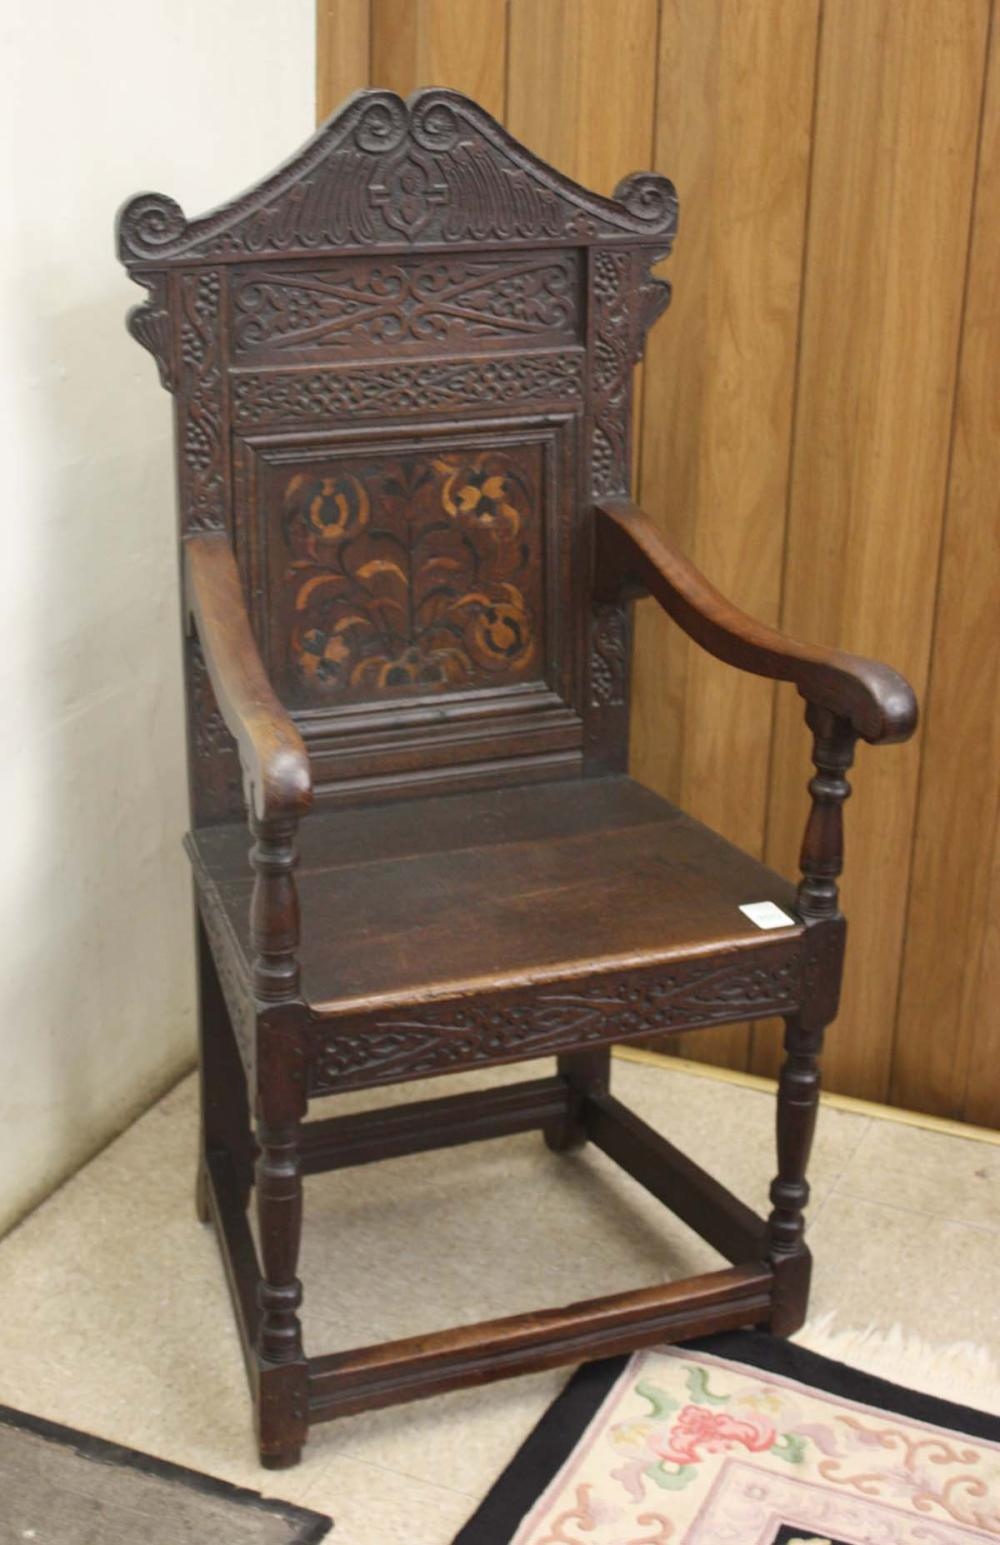 Lot 350: A CARVED AND INLAID WAINSCOT ARMCHAIR, English, 17